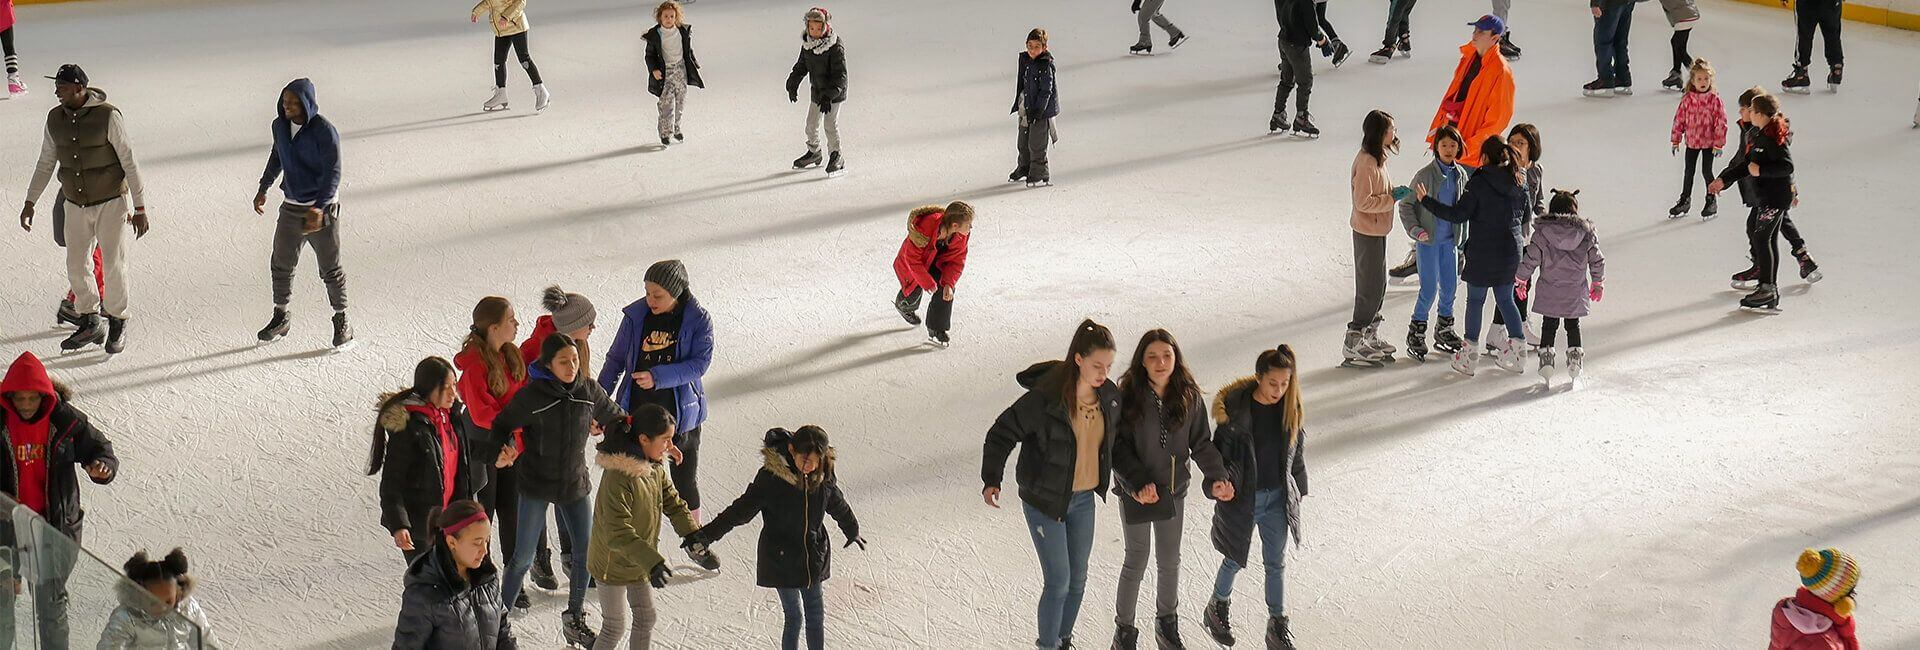 public ice skating, ice skating, sports and events